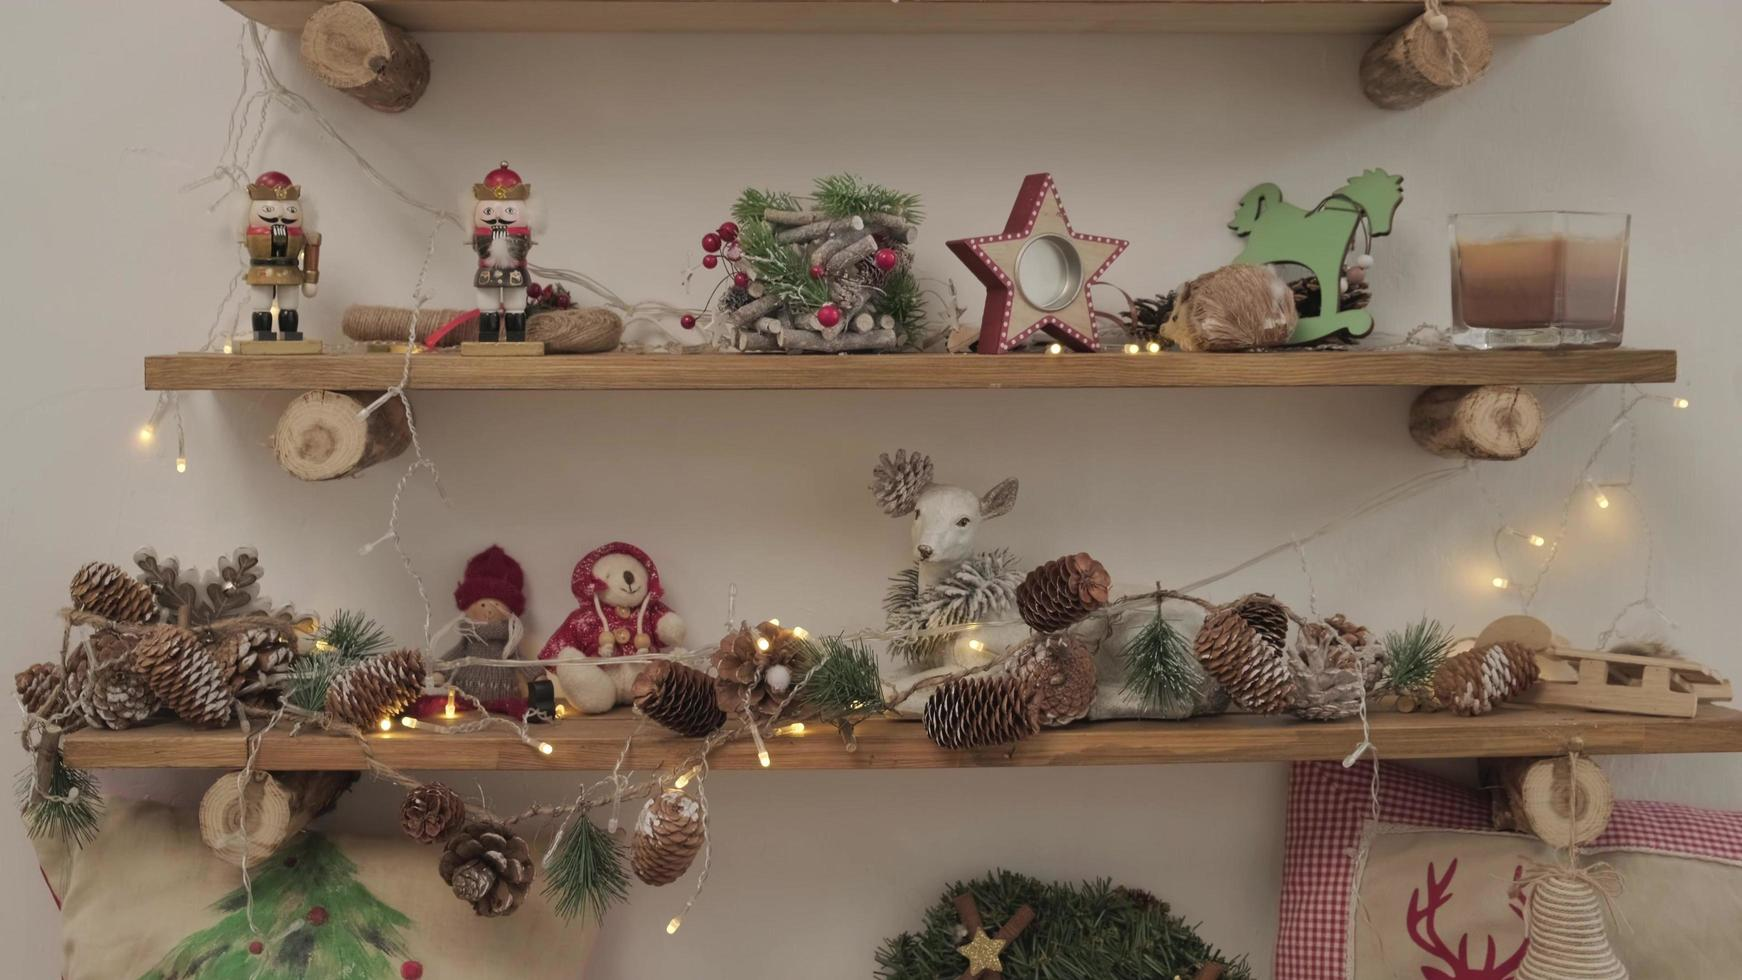 A room with Christmas decorations and toys. on the wooden shelfs are souvenirs and decorations photo